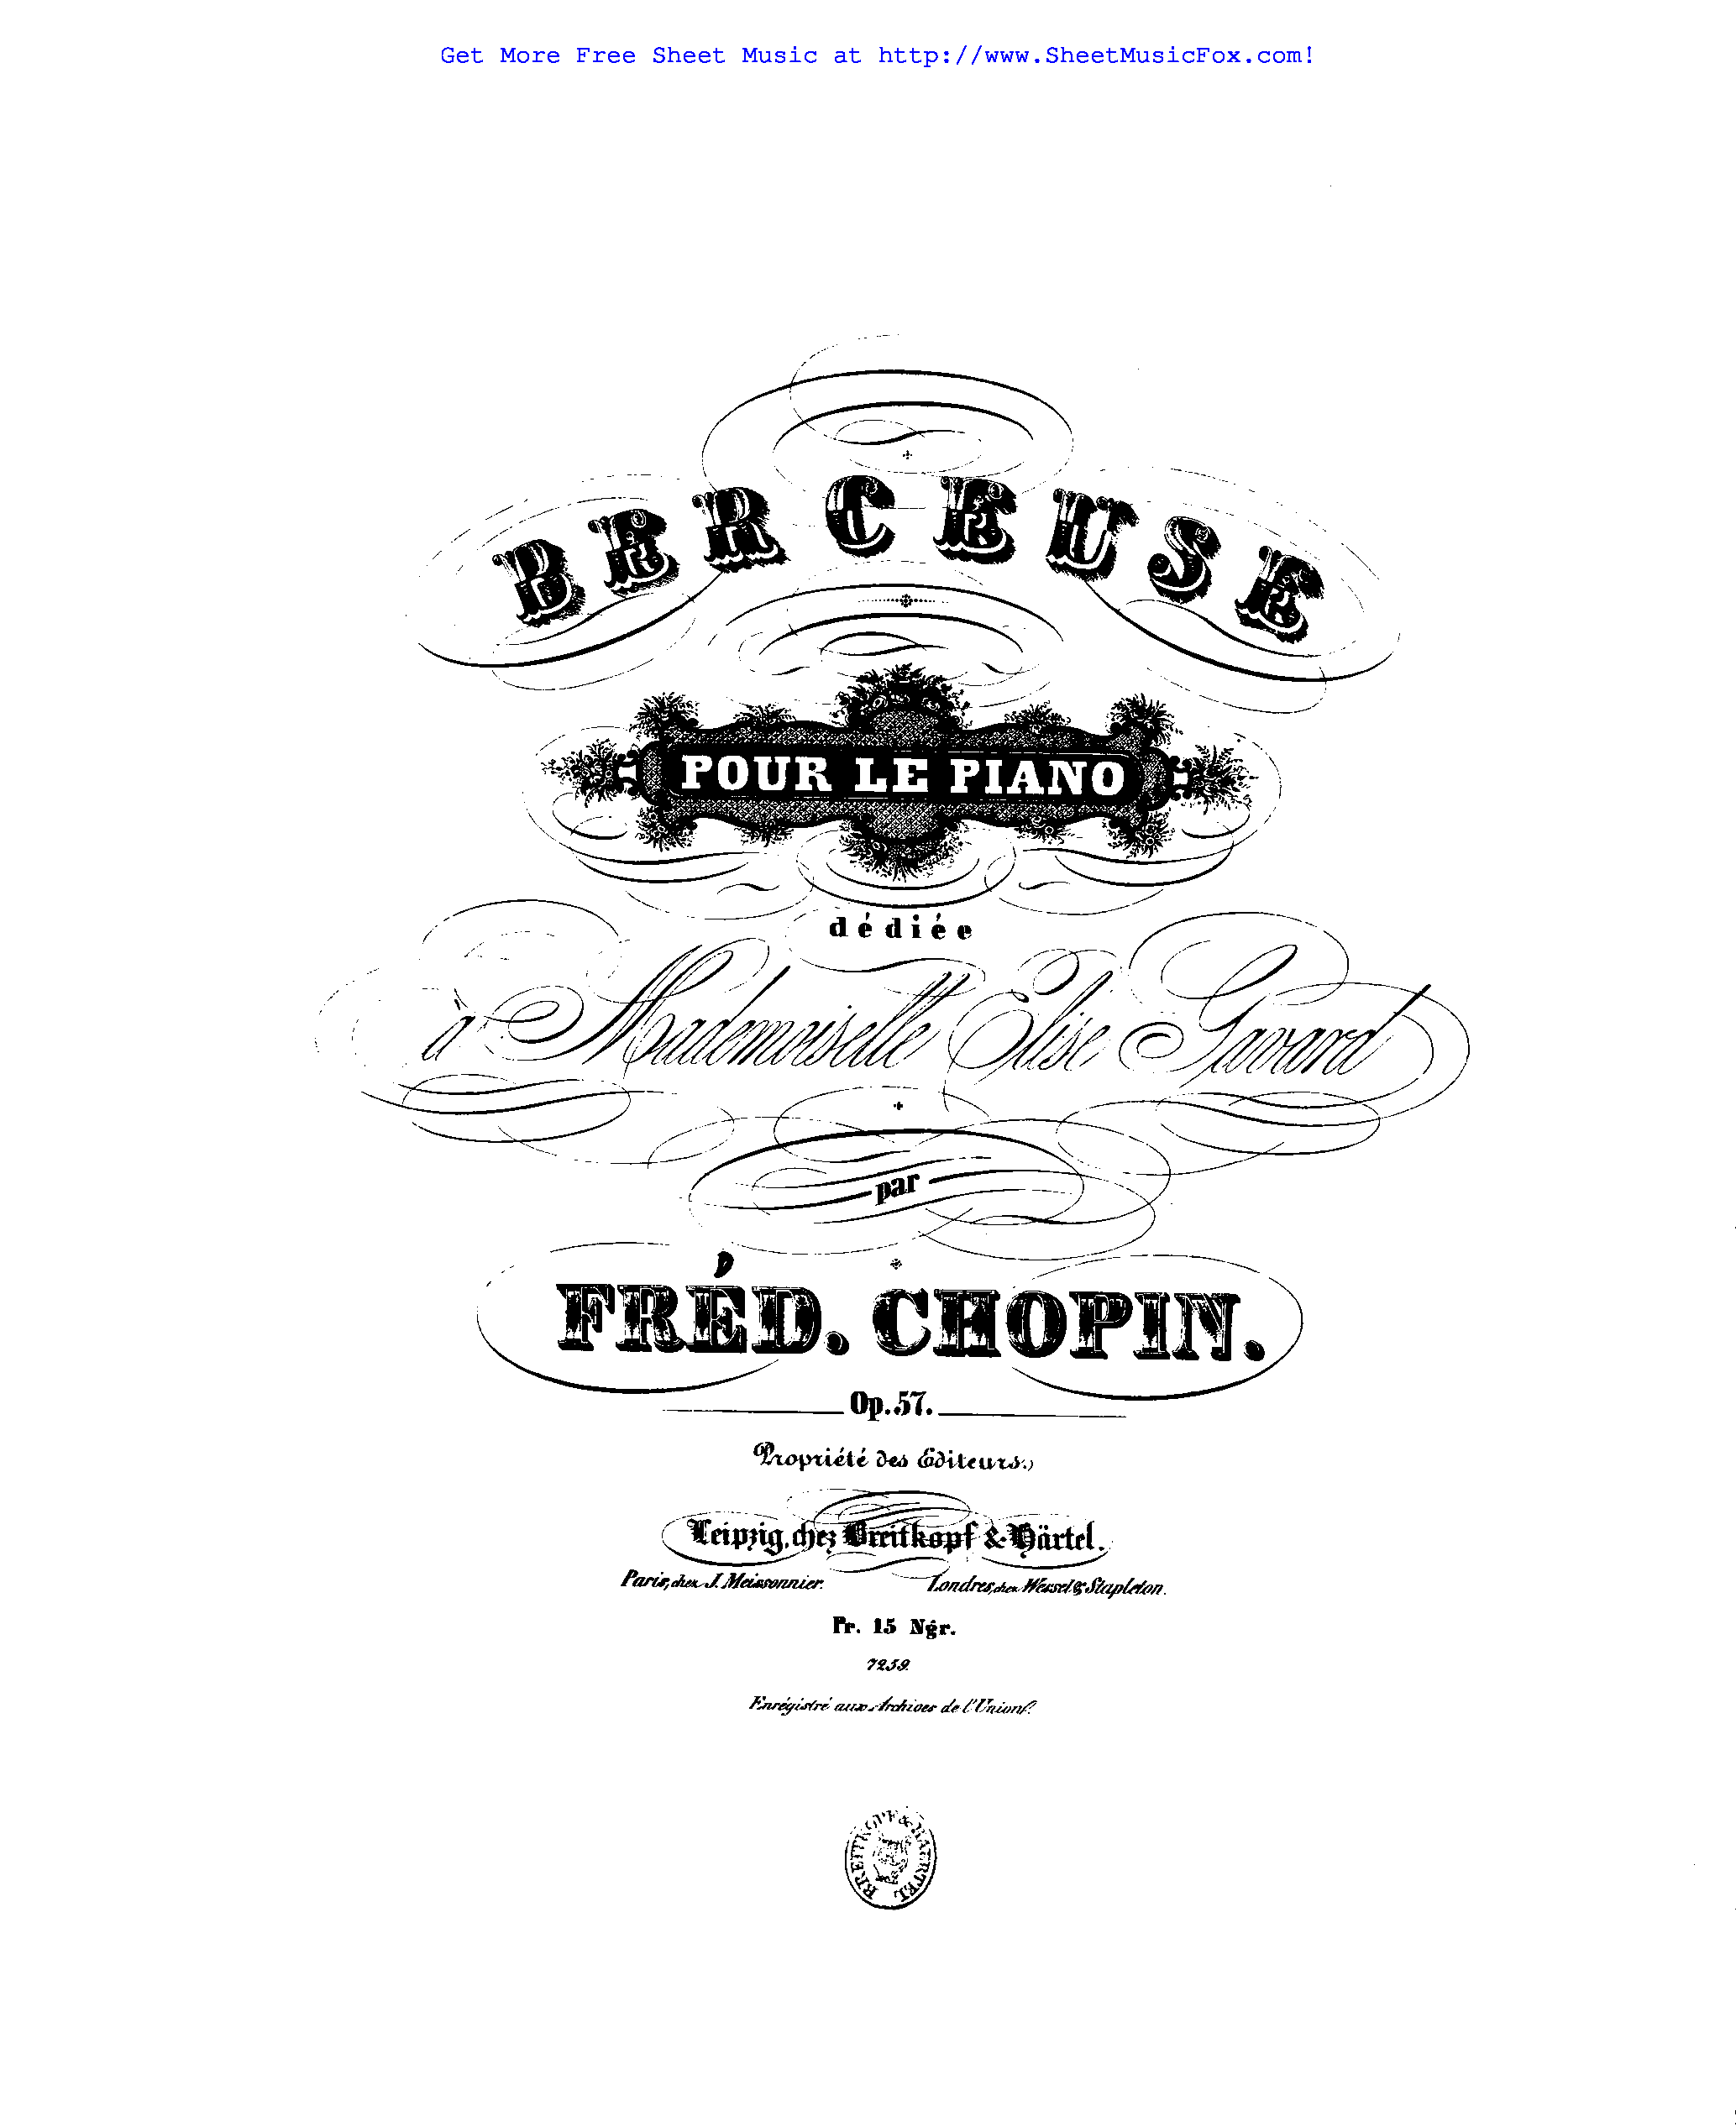 Free sheet music for Berceuse, Op.57 (Chopin, Frédéric) by